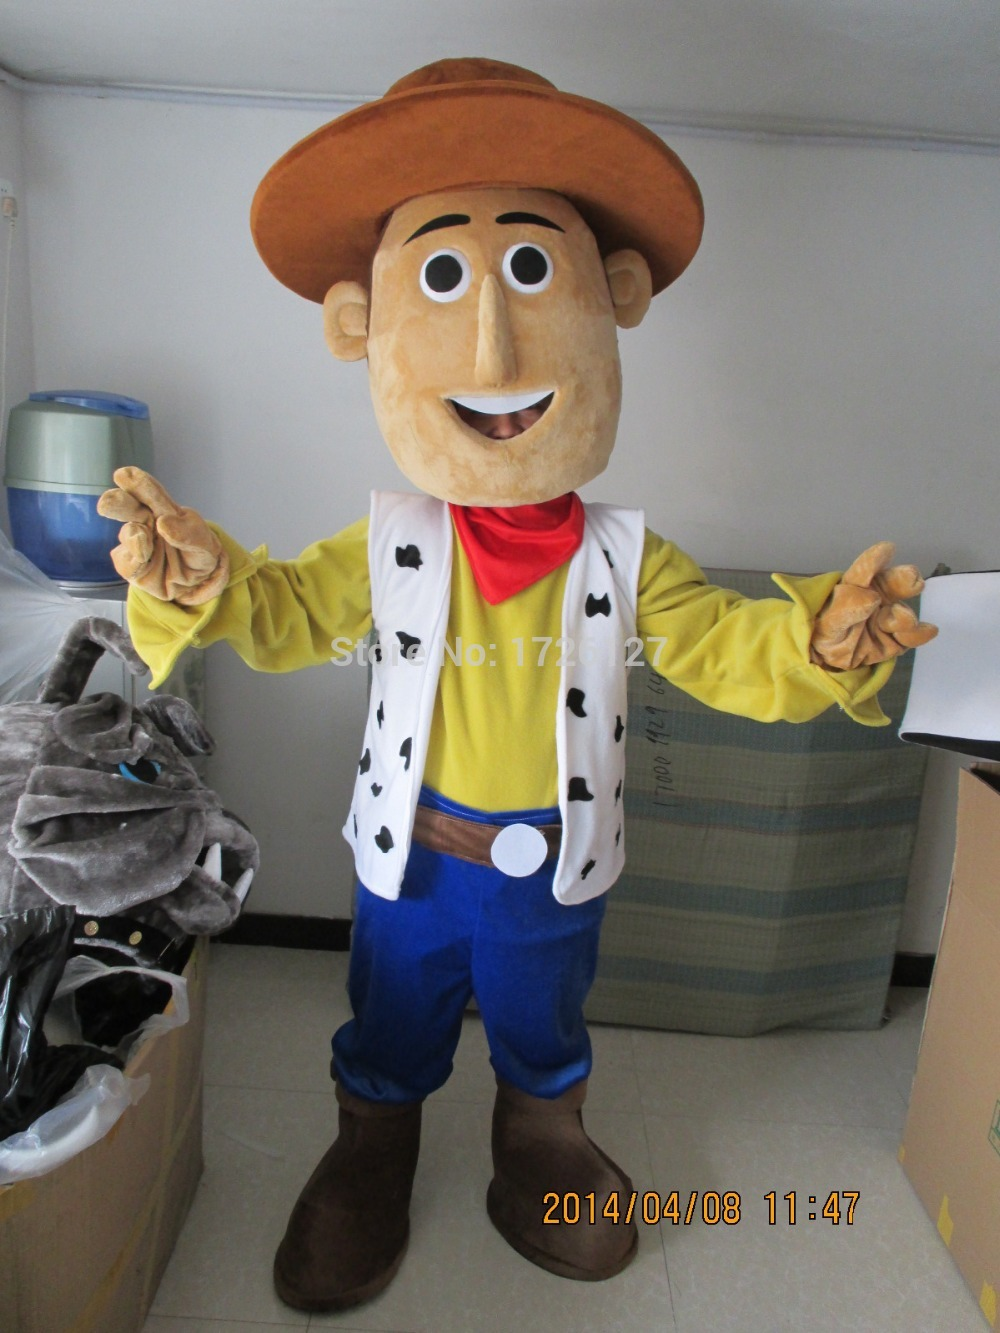 mascot woody cow boy mascot toy costume custom fancy costume anime cosplay kit mascotte theme fancy dress carnival costume